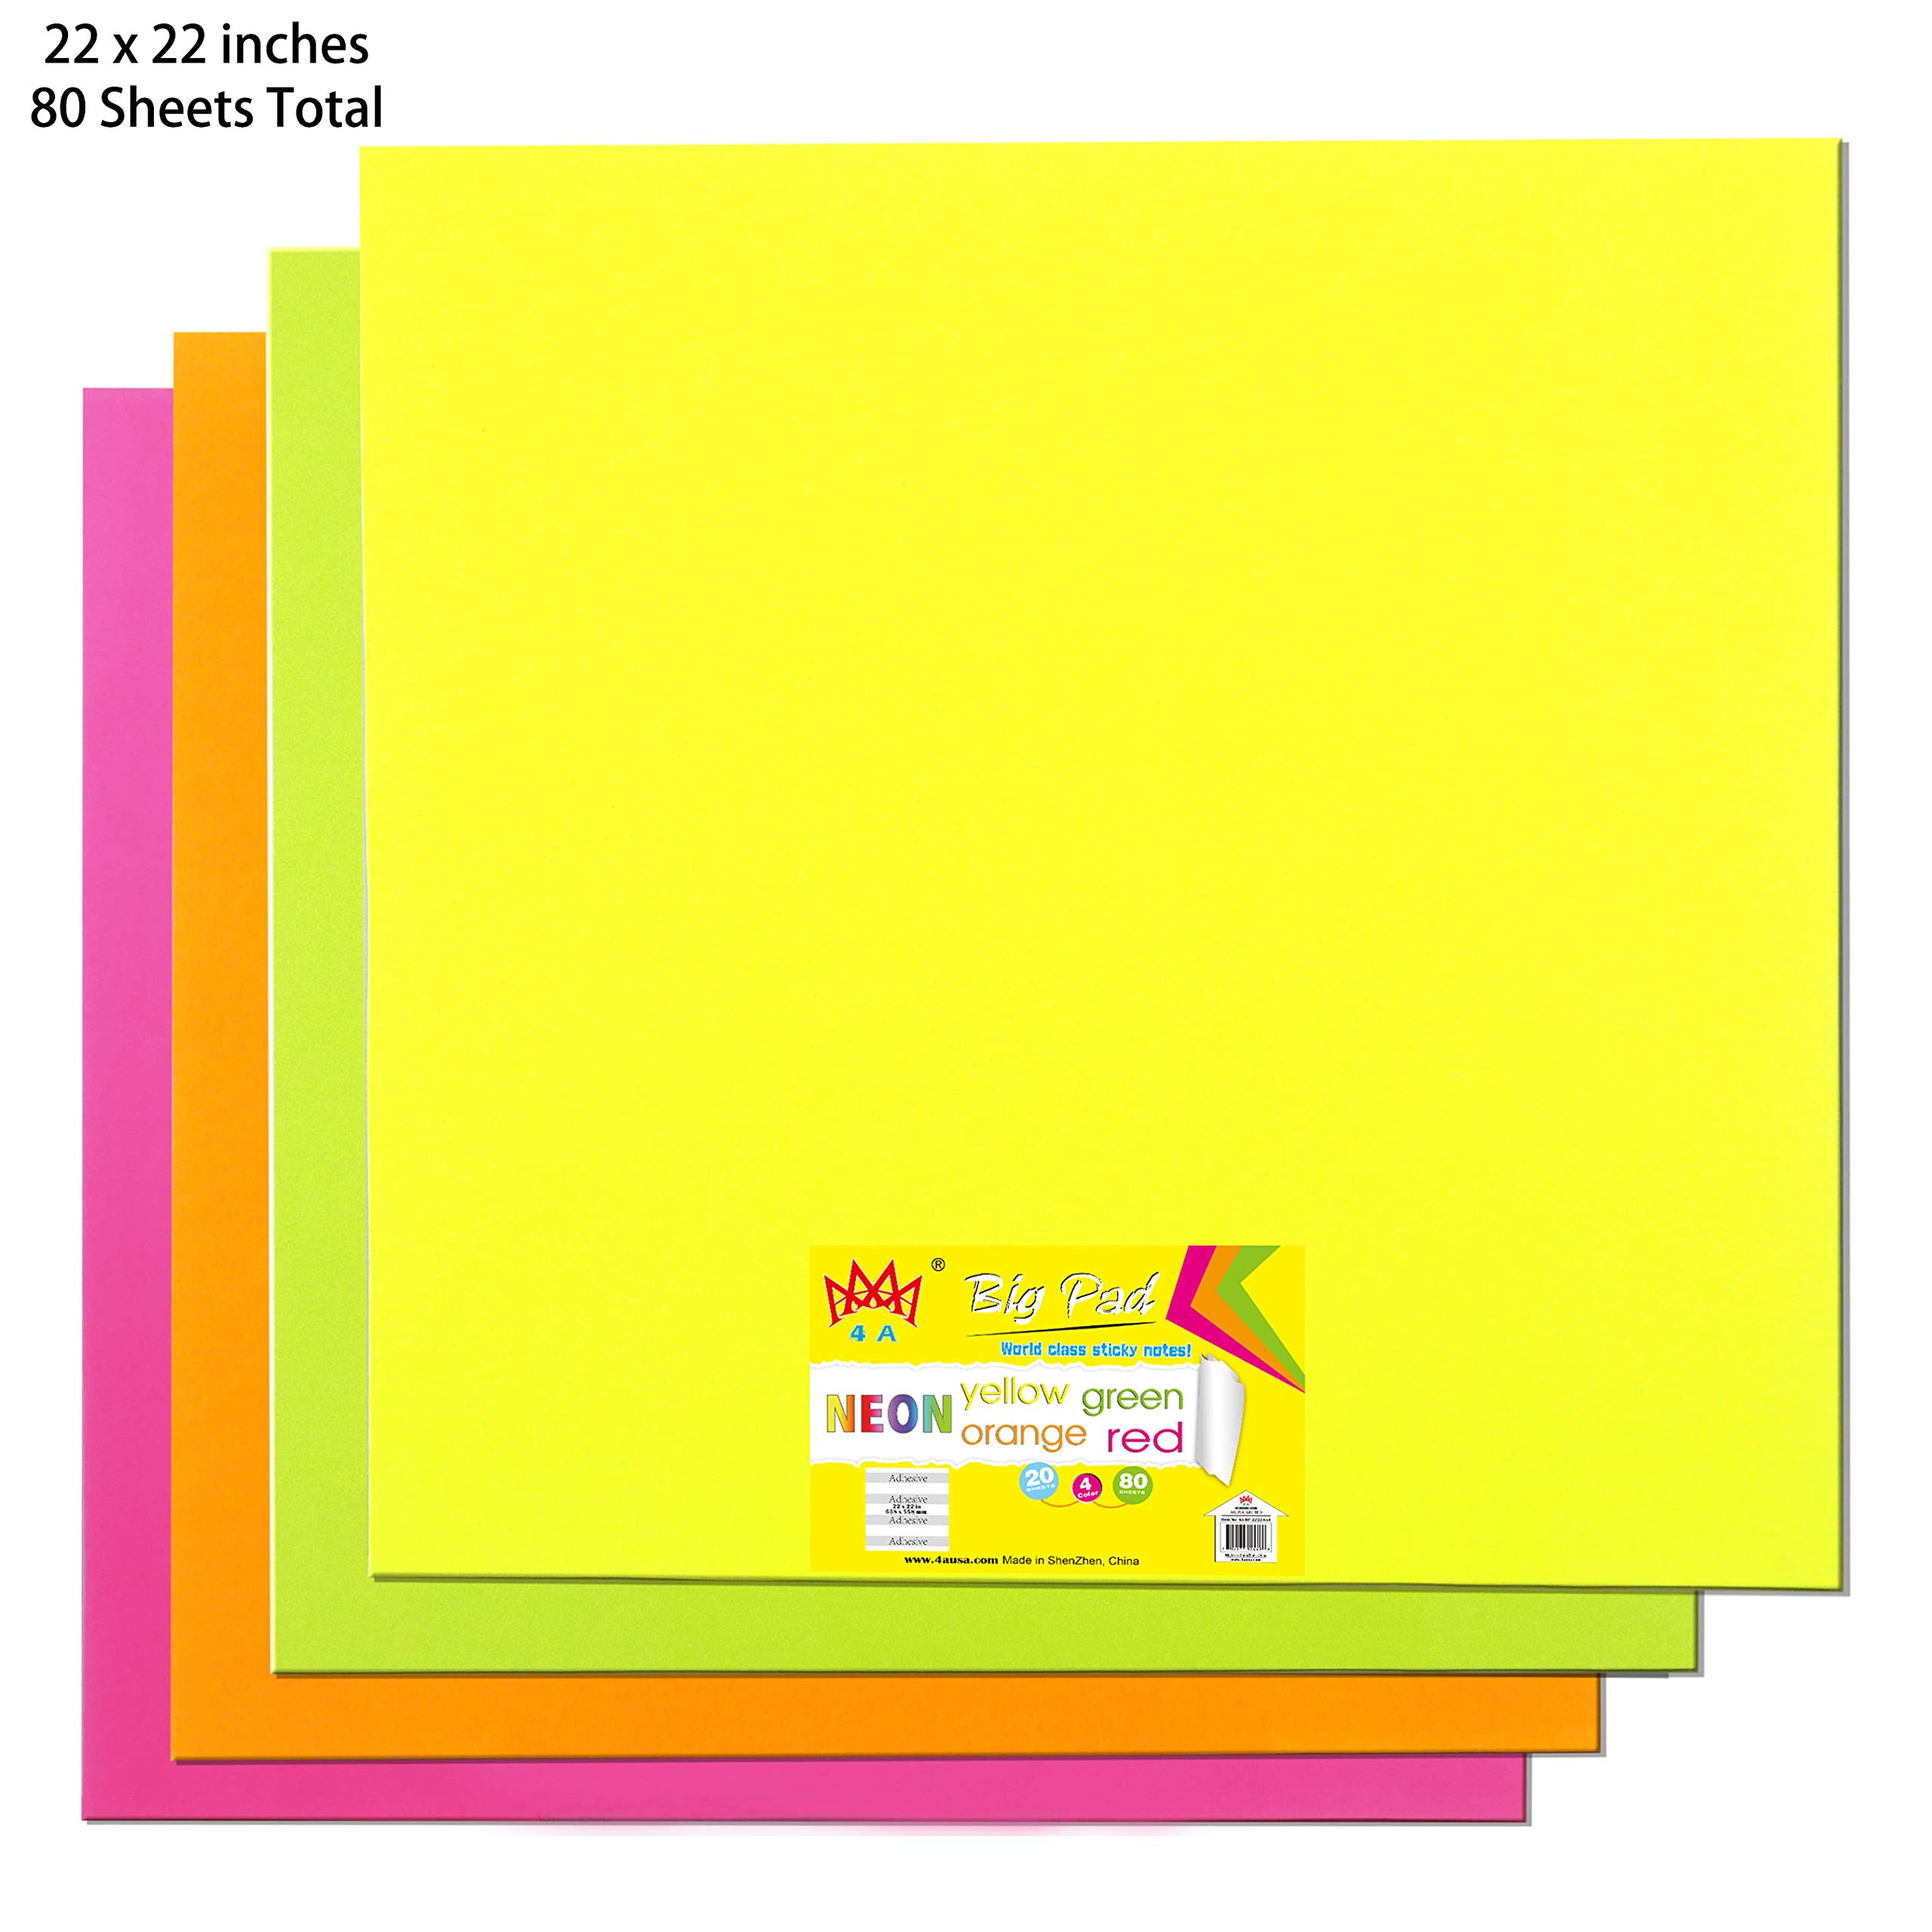 4A Sticky Big Pad,22 x 22 in,Large Size,Neon Yellow,Orange,Red and Green,Self-Stick Notes,20 Sheets/Pad,4 Pads/Pack,4A BP 2222-Nx4